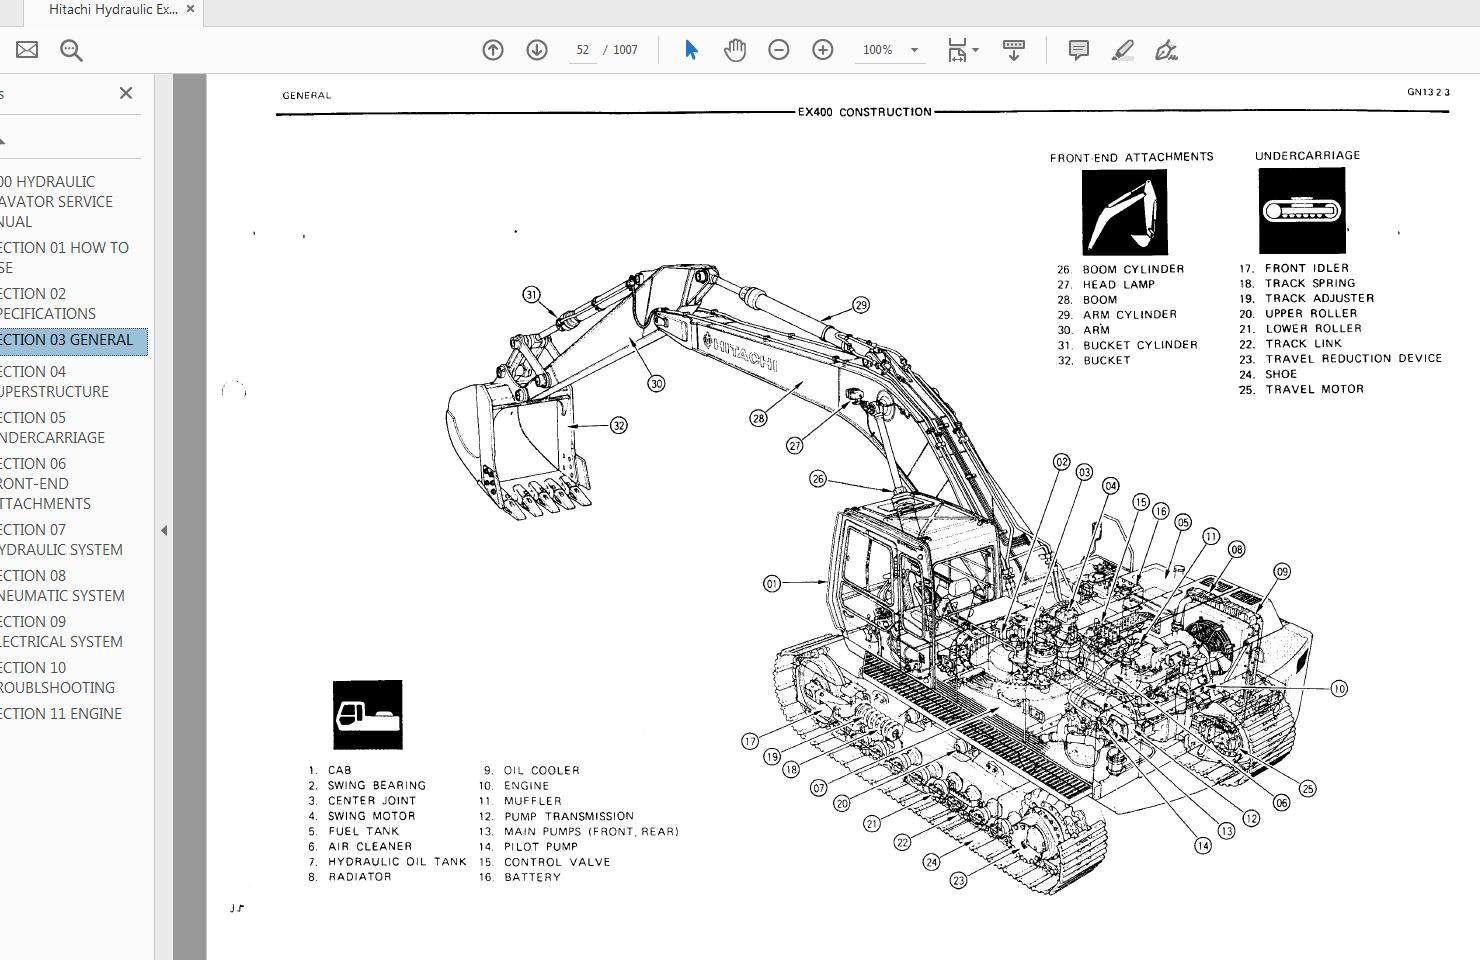 Hitachi Hydraulic Excavator EX400-1 Service Manual